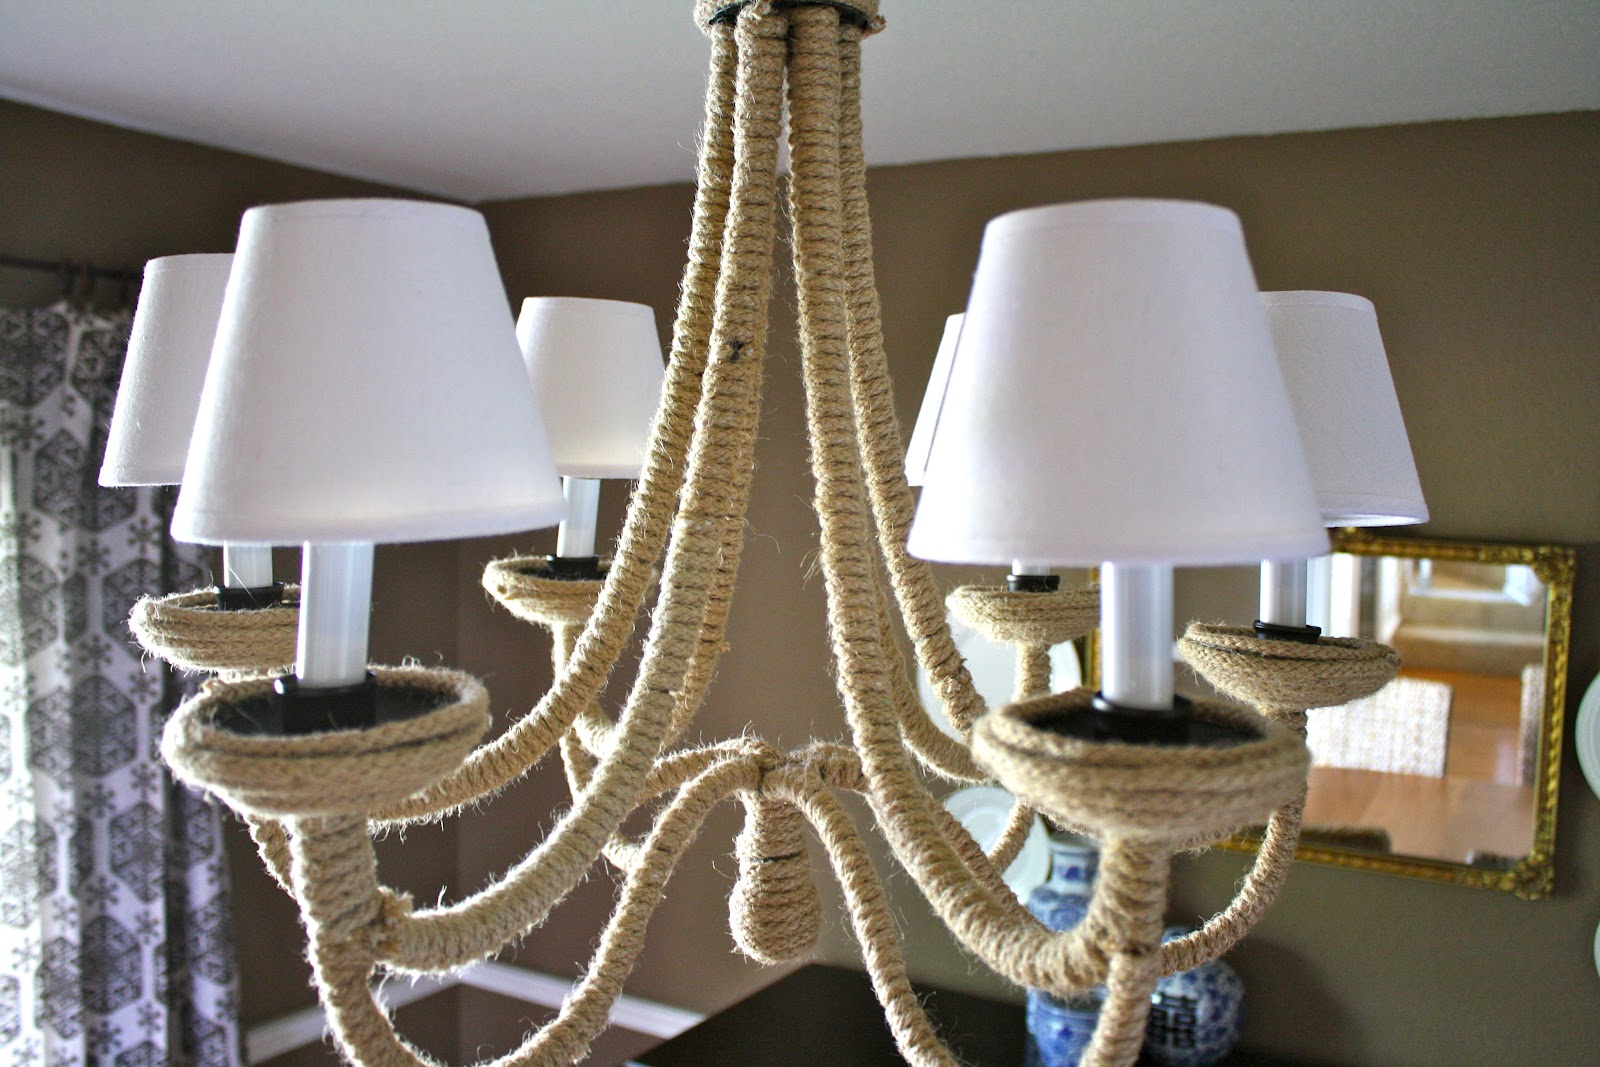 Remodelaholic knockoff diy chandelier here is how it turned out mozeypictures Choice Image